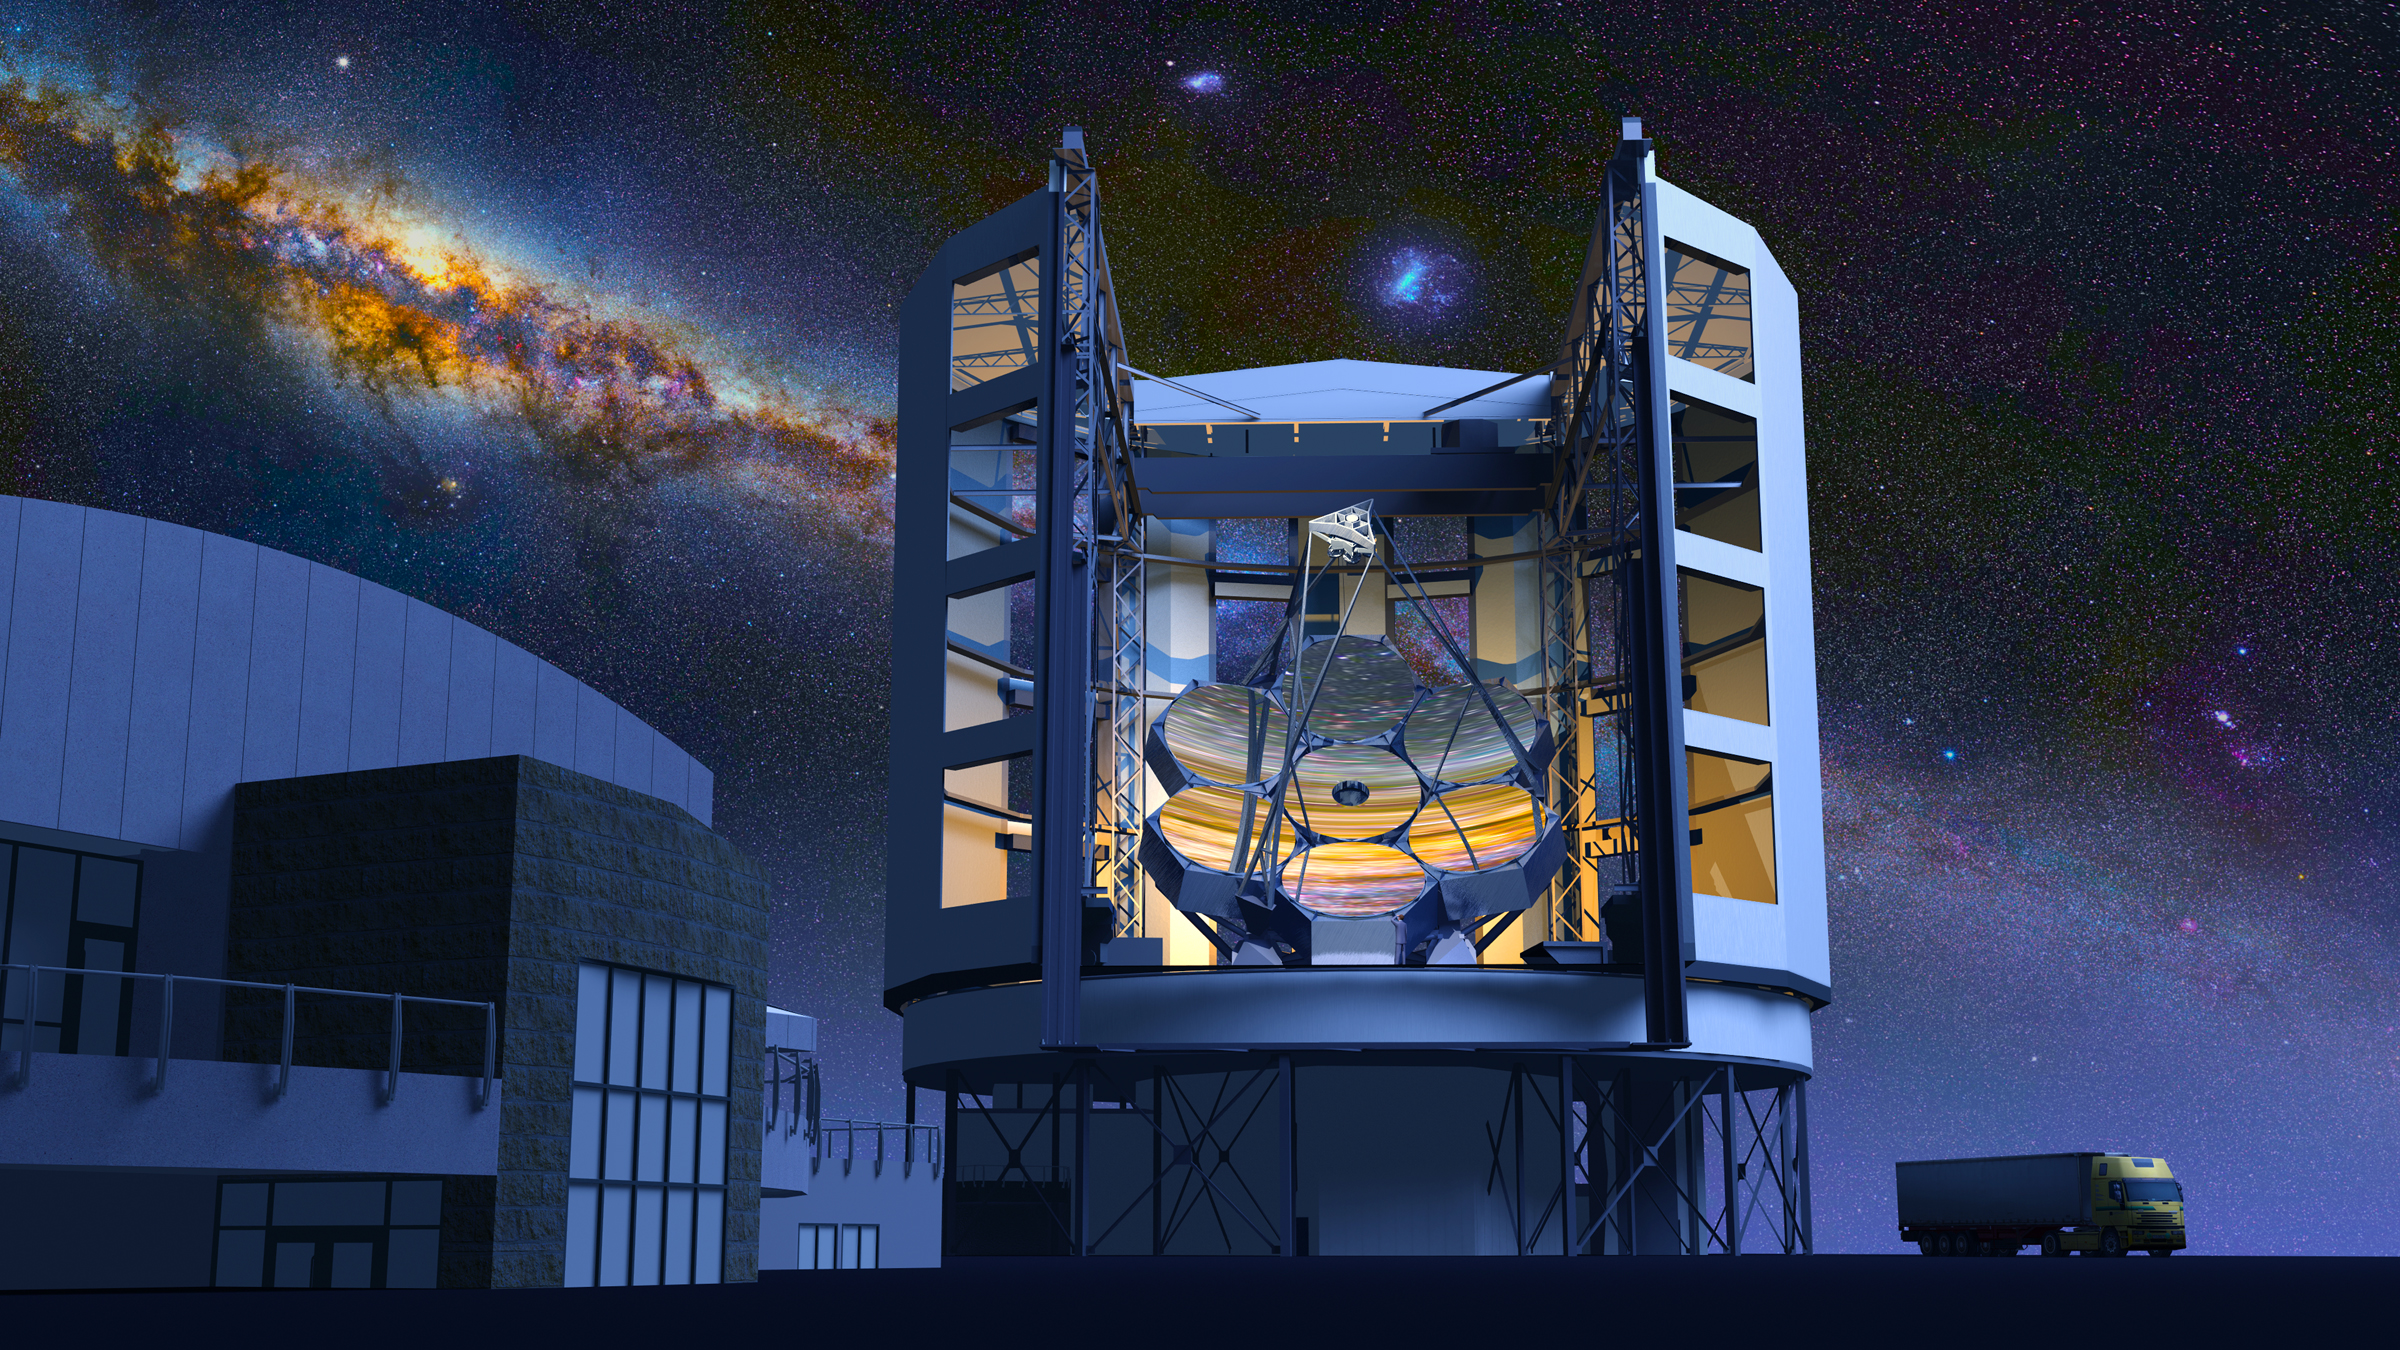 https://upload.wikimedia.org/wikipedia/commons/1/15/Giant_Magellan_Telescope_-_artist's_concept.jpg